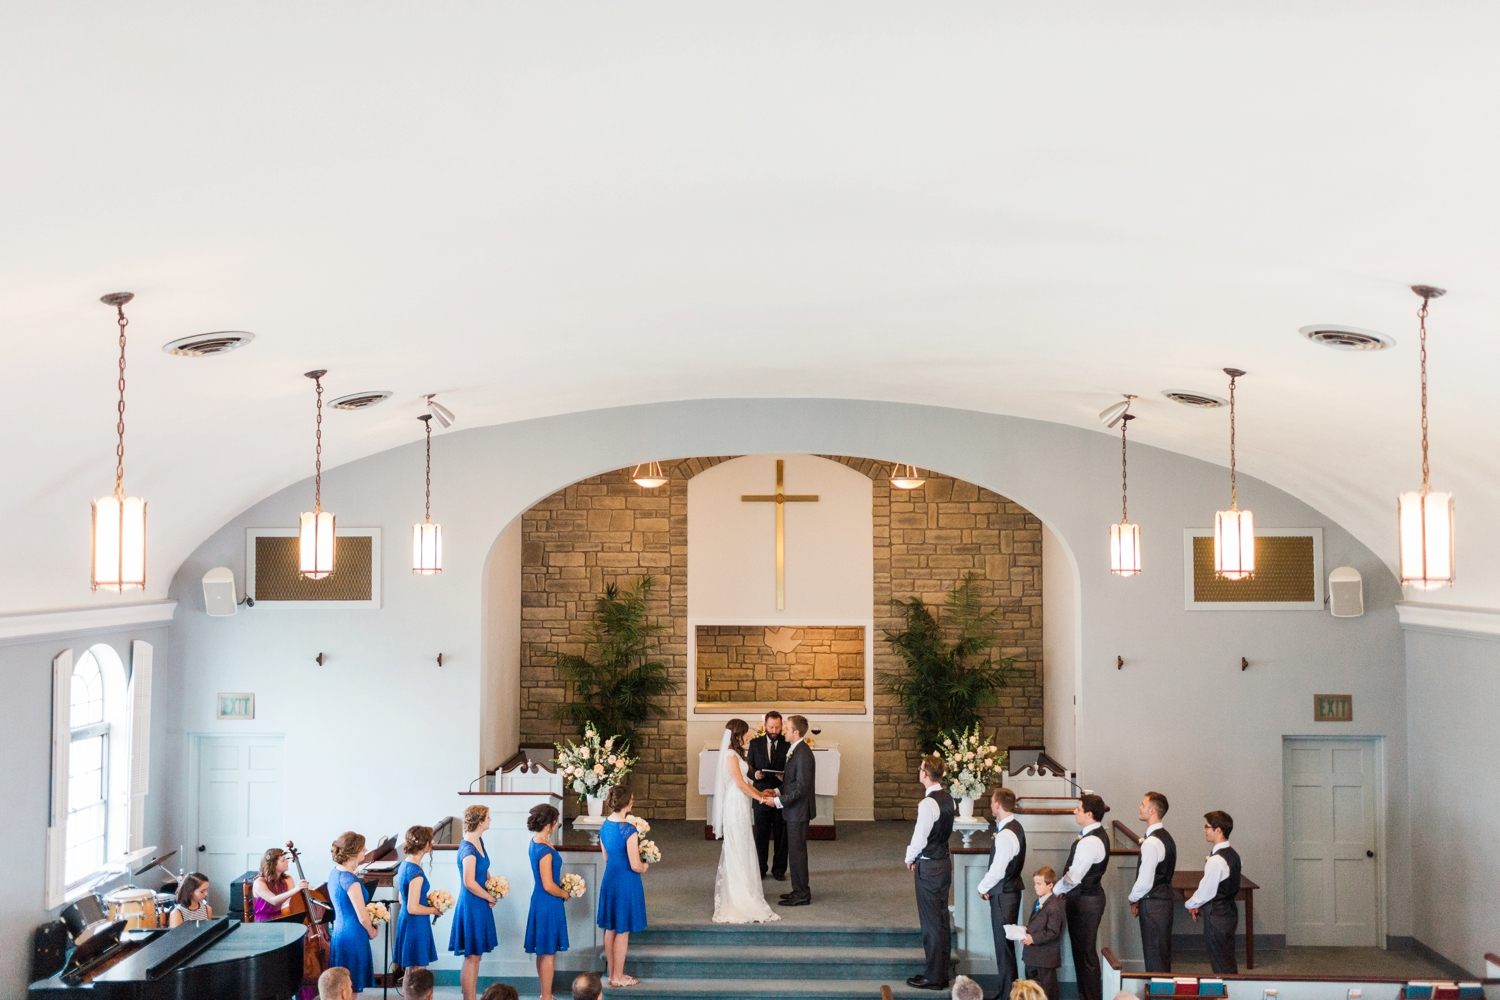 NCR_Country_Club_Kettering_Ohio_Wedding_Photography_Chloe_Luka_Photography_7140.jpg